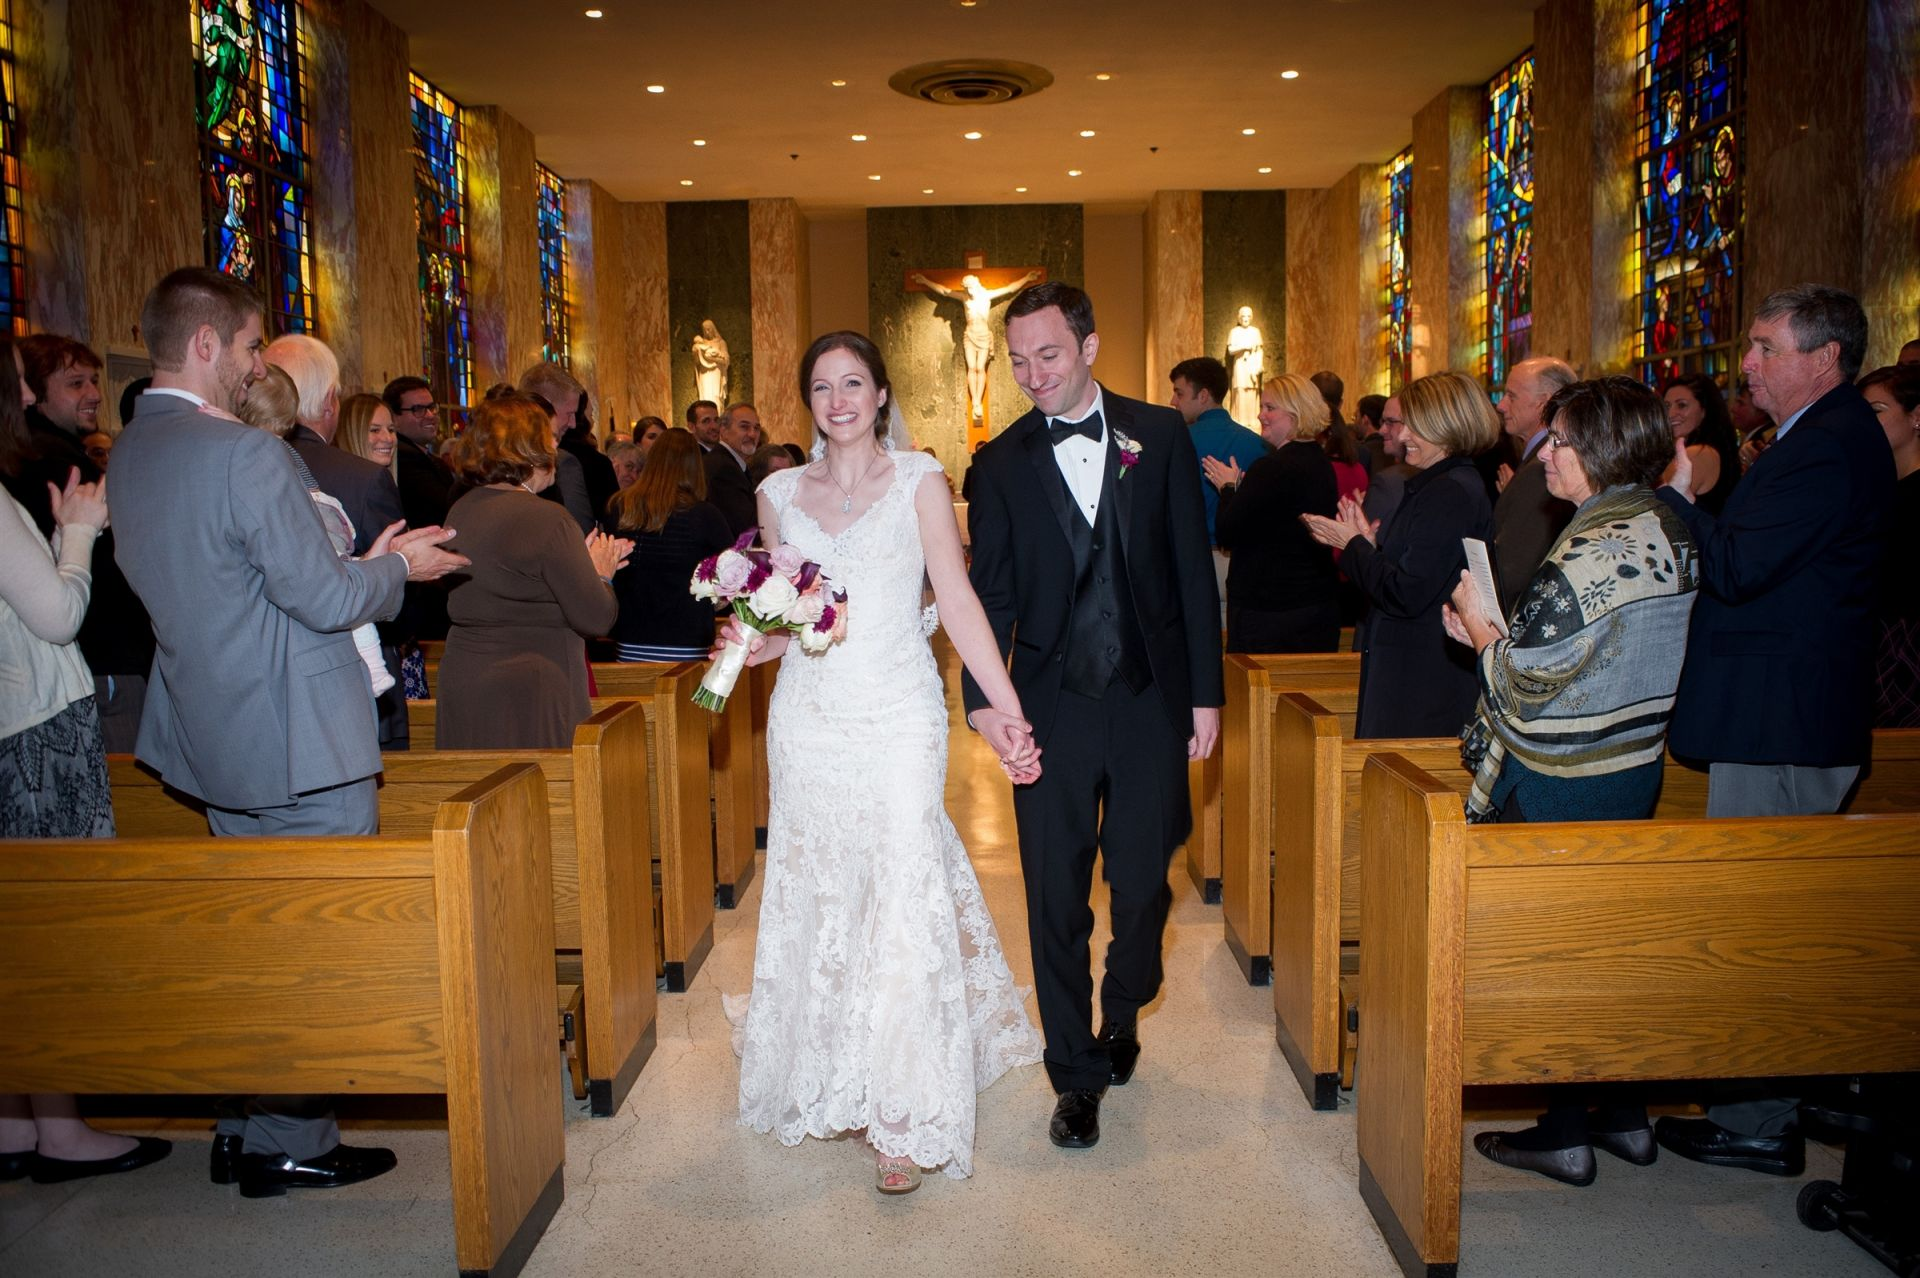 Anne Roberts ('03) & Zachary Russo's Wedding on November 5, 2016.